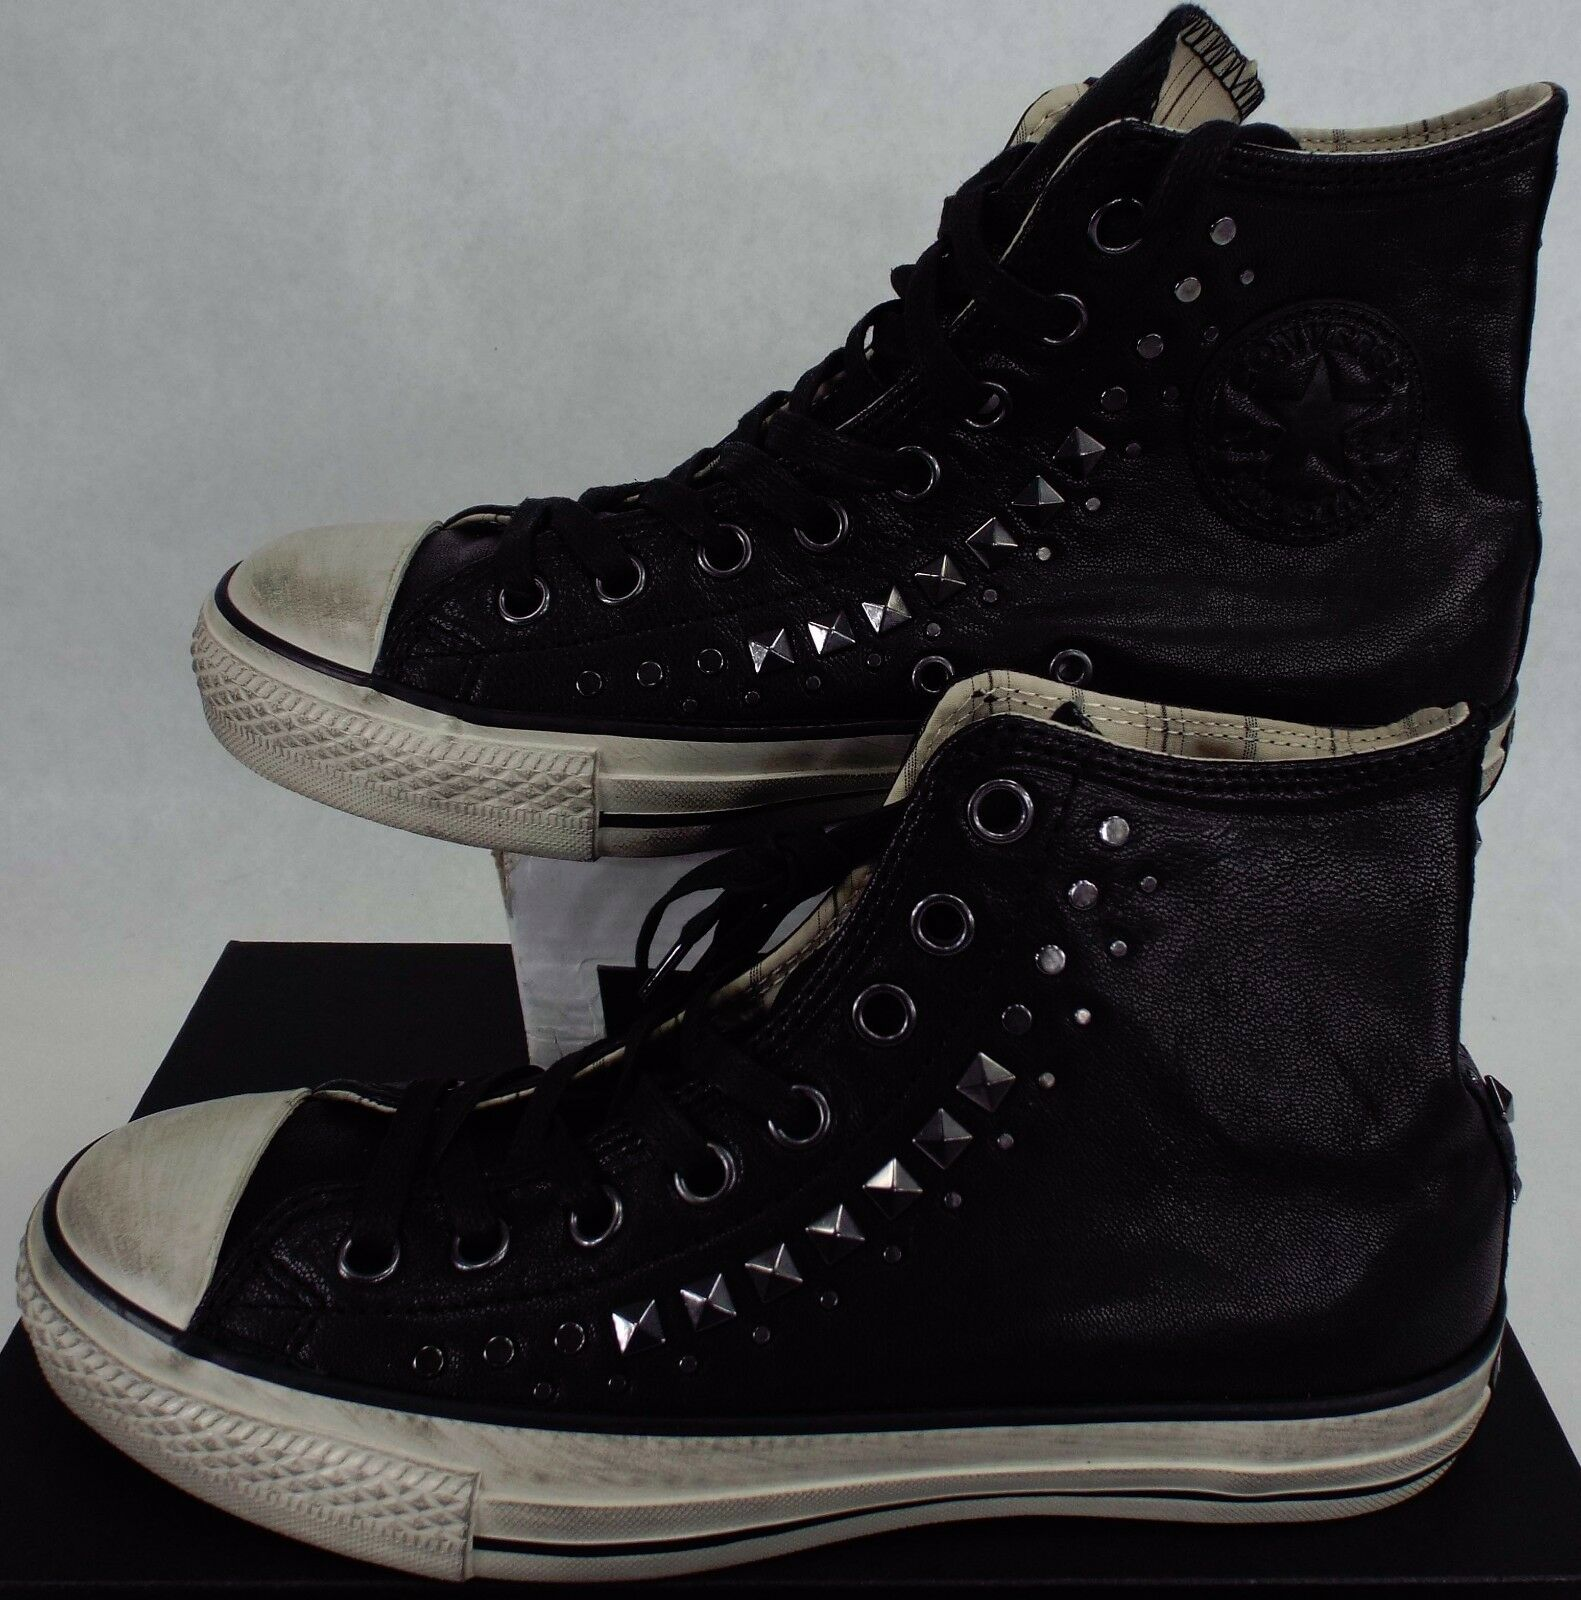 New Mens 4 CONVERSE John Varvatos CT Hi Black Leather Shoes   150162C Womens 6